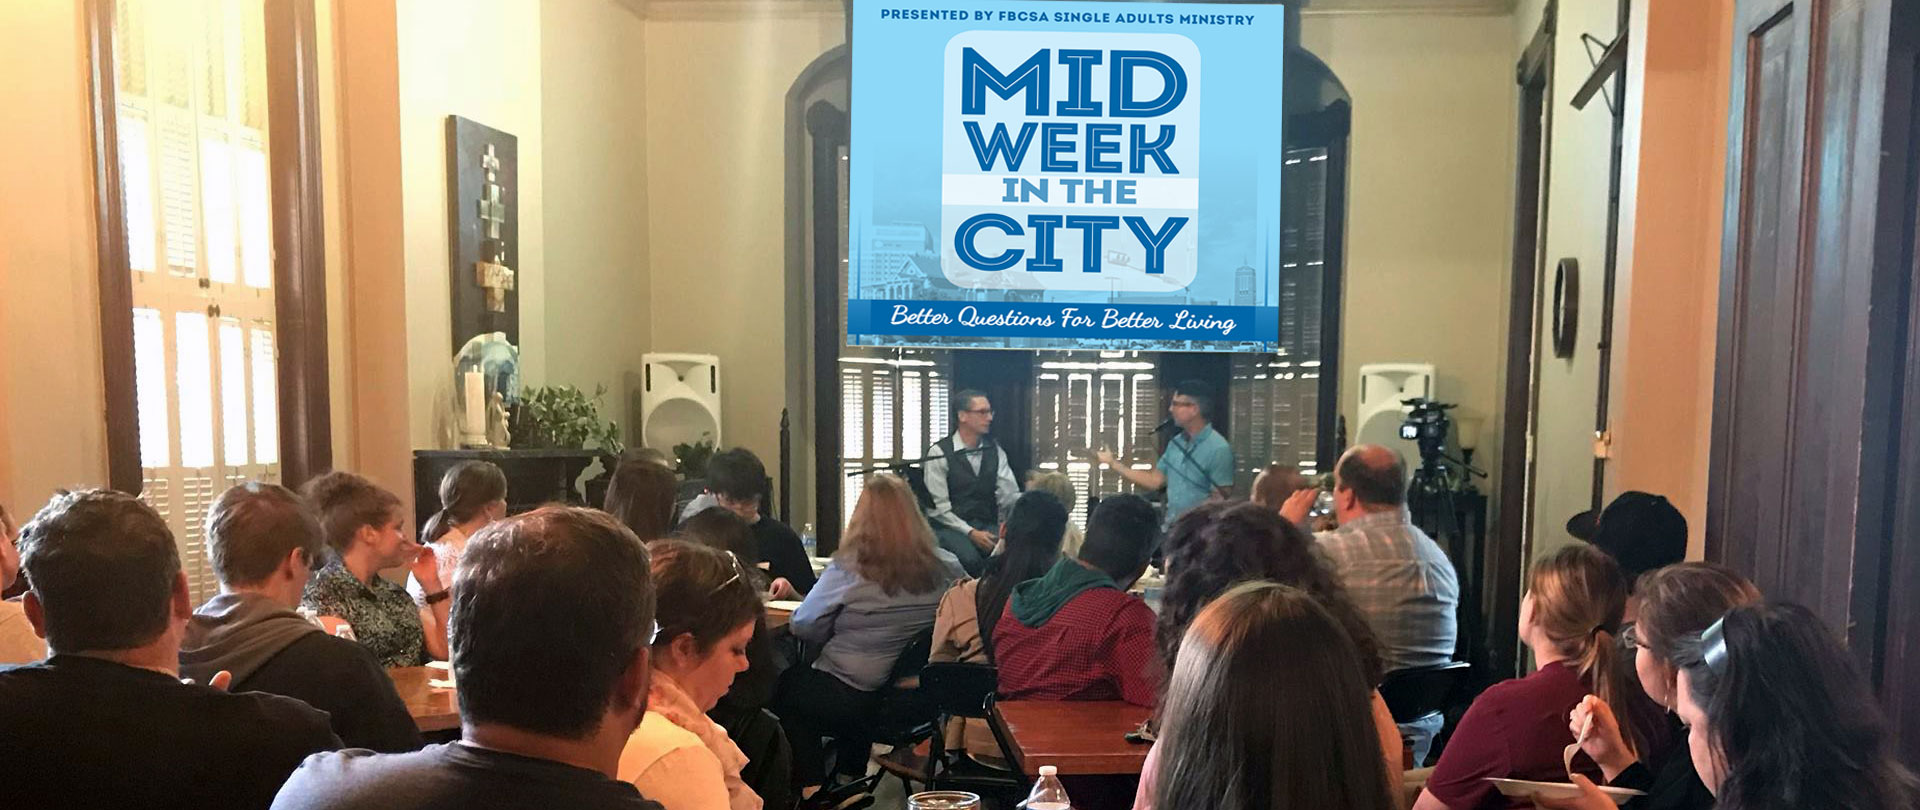 Mid-week in the City is now THINC